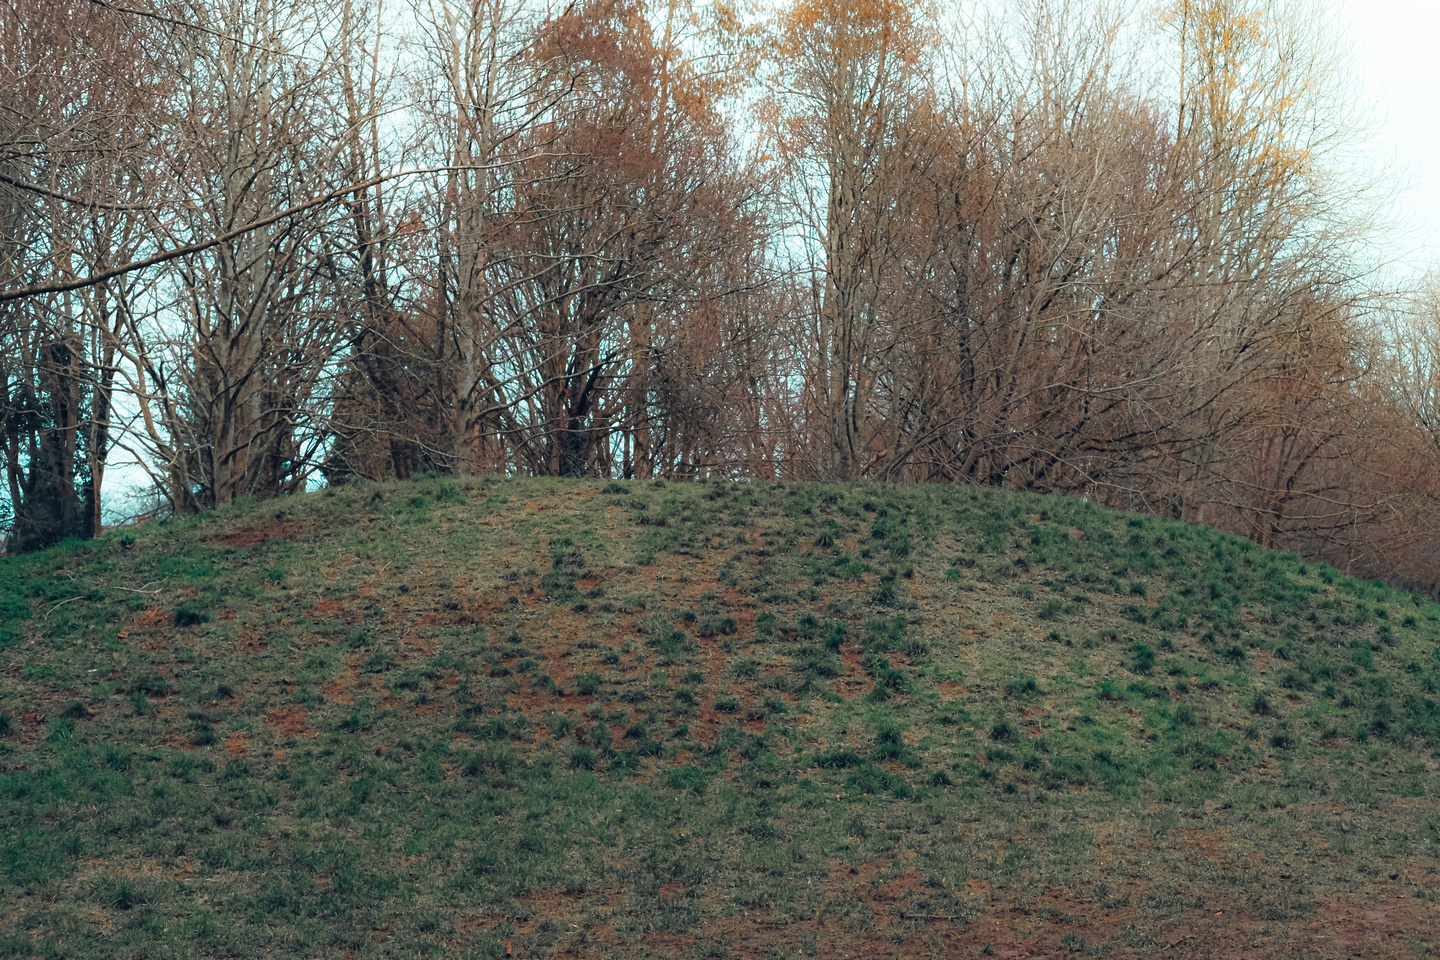 Badock's Wood and its Bronze Age burial mound